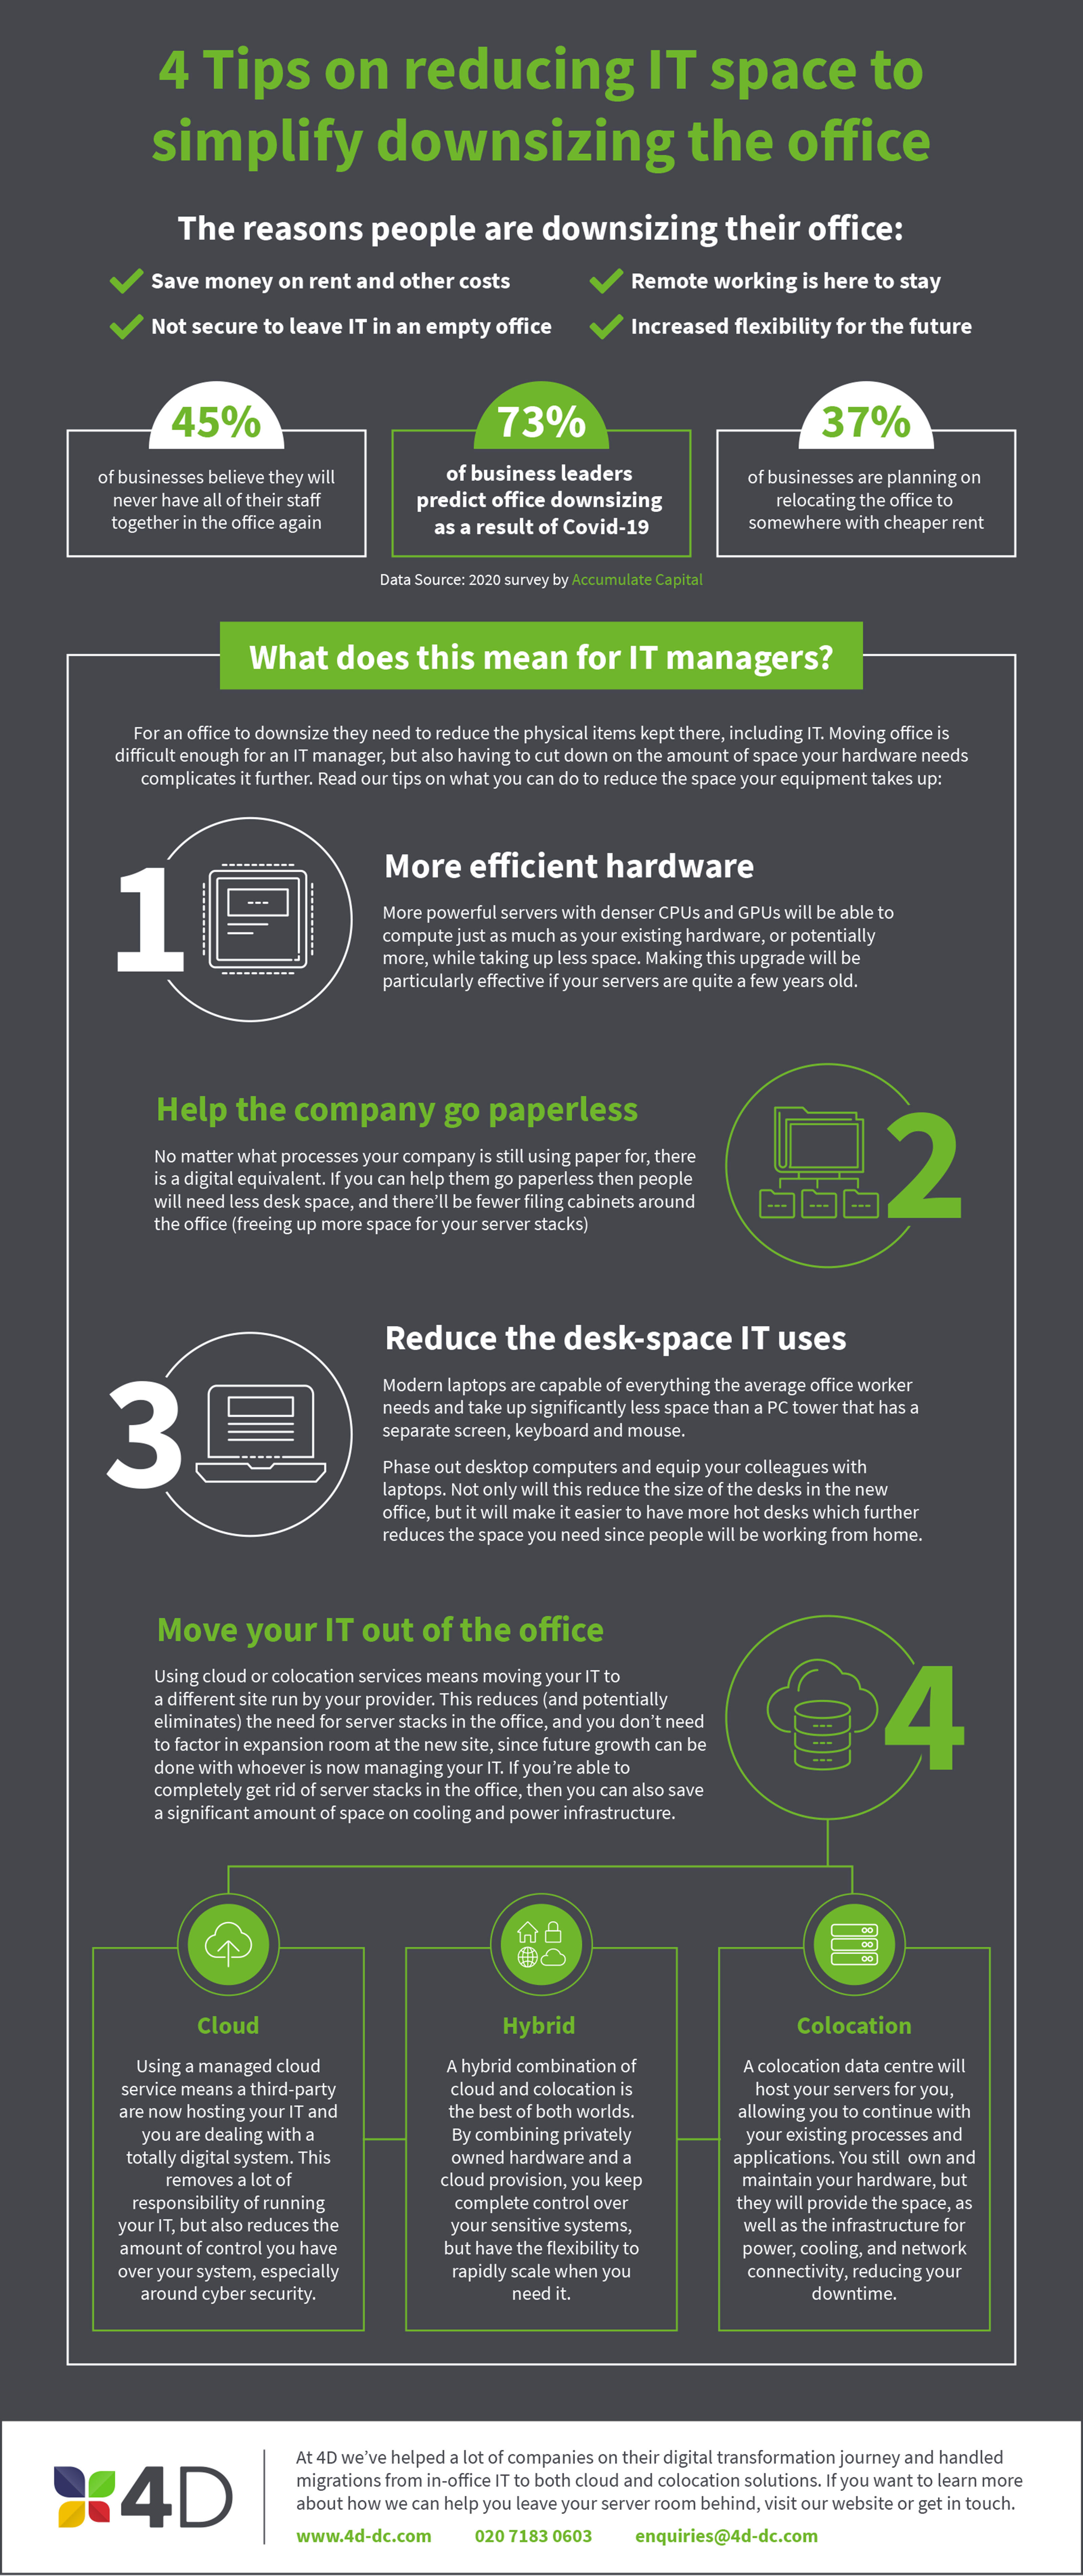 Infographic: 4 tips for IT managers to reduce IT space to make downsizing the office easier